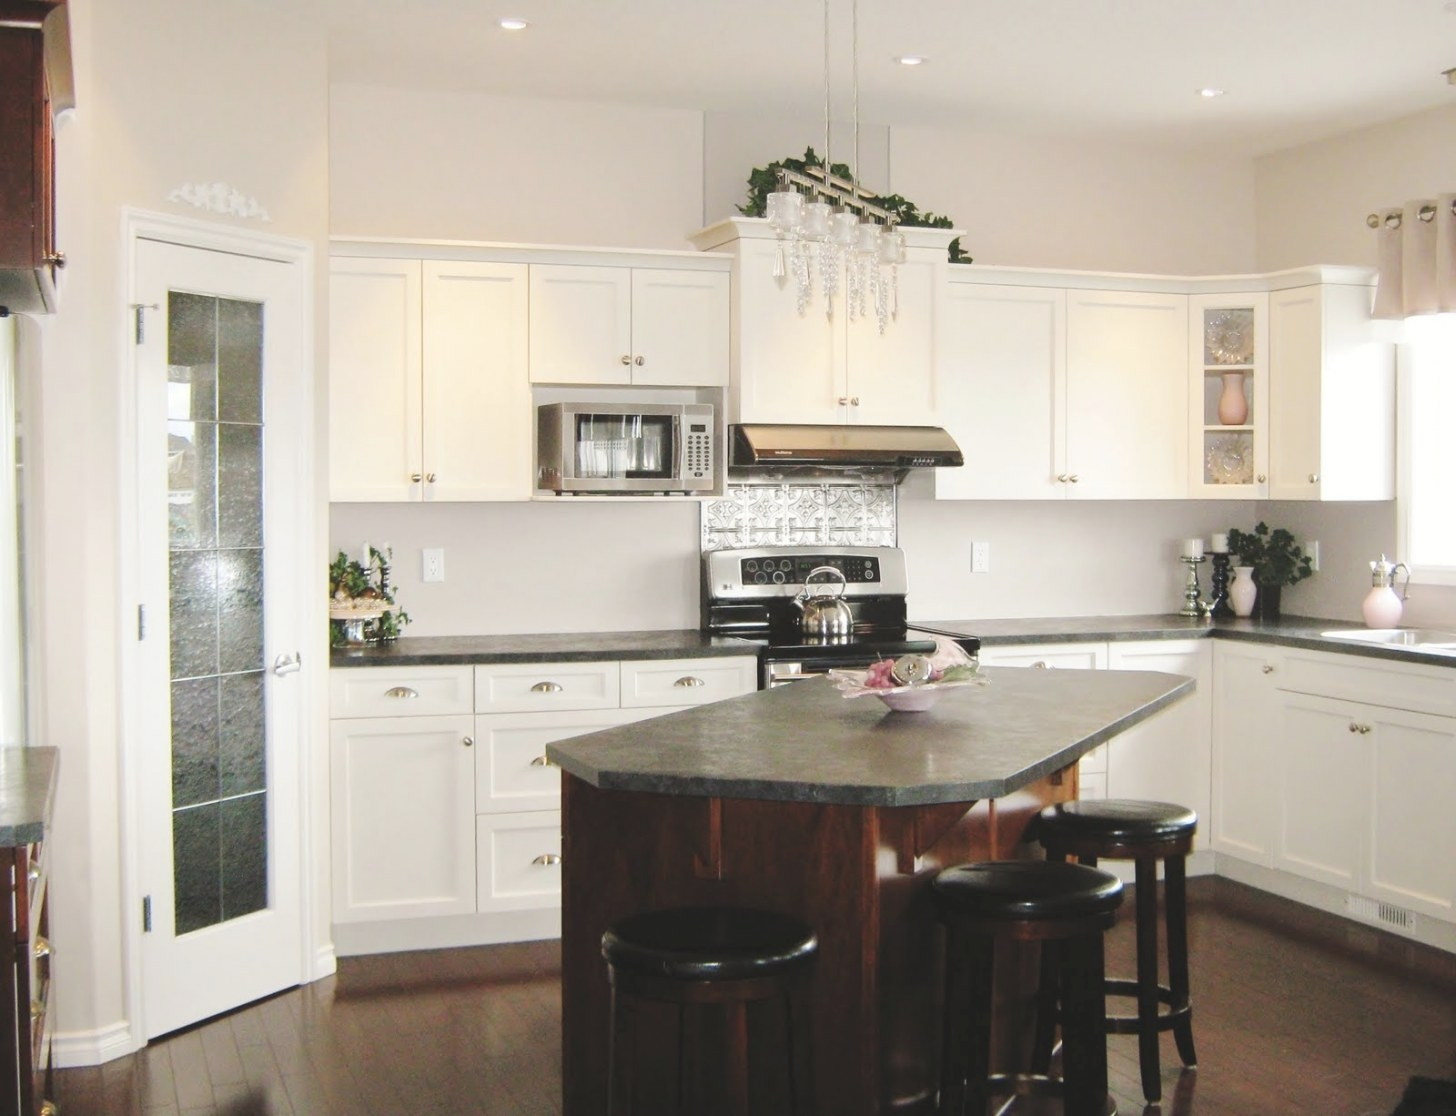 How To Create A Stylish Kitchen In A Small Space - Aspire intended for Image Of Small Kitchen